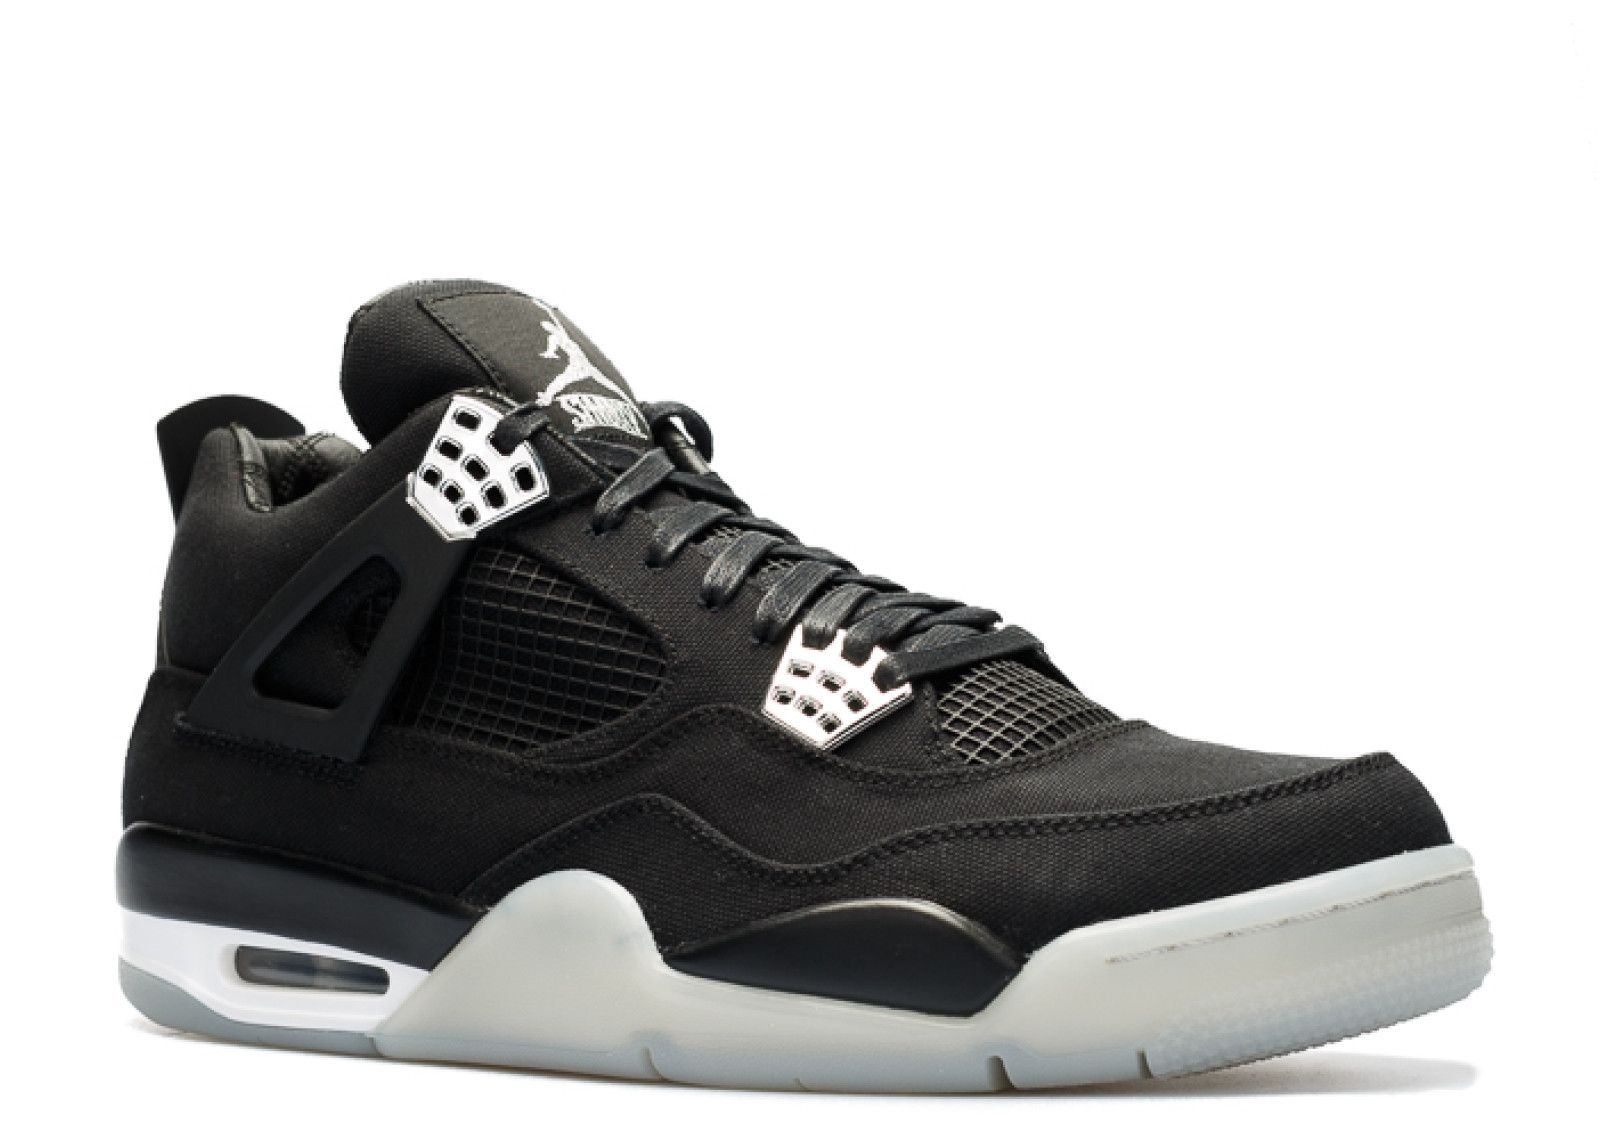 new product 8b629 d1a11 Air jordan 4 retro